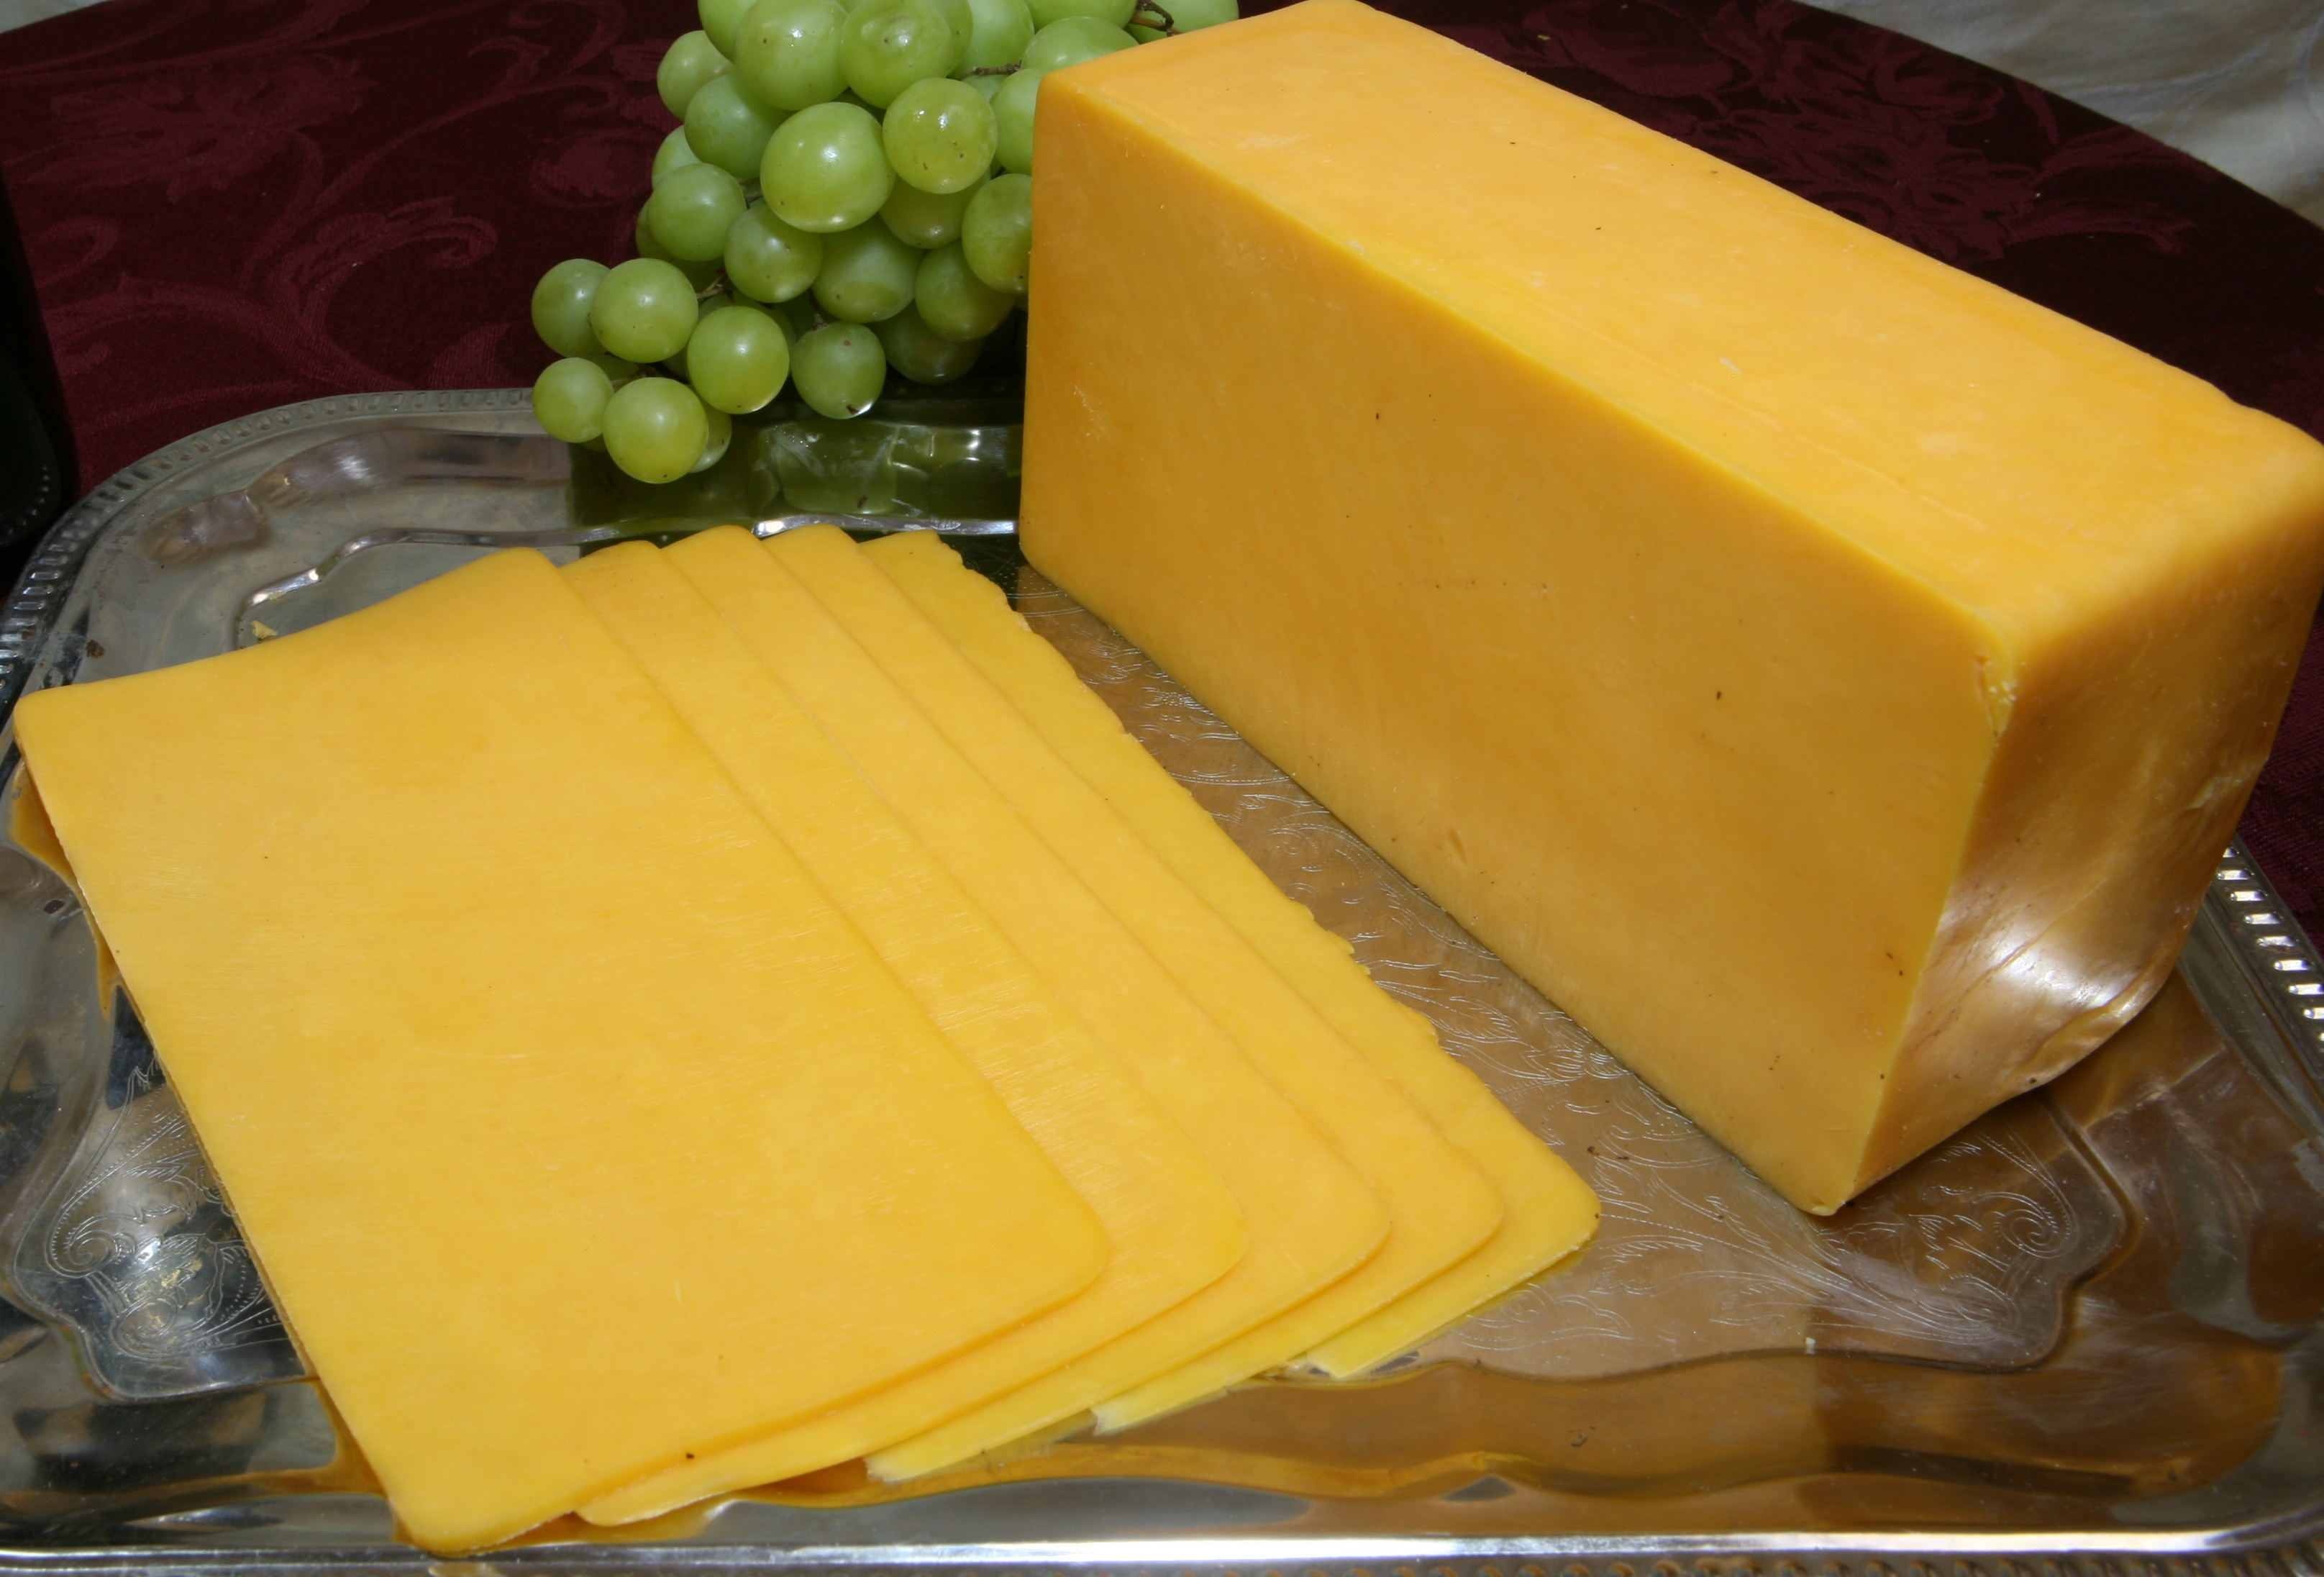 Cheddar – yellow